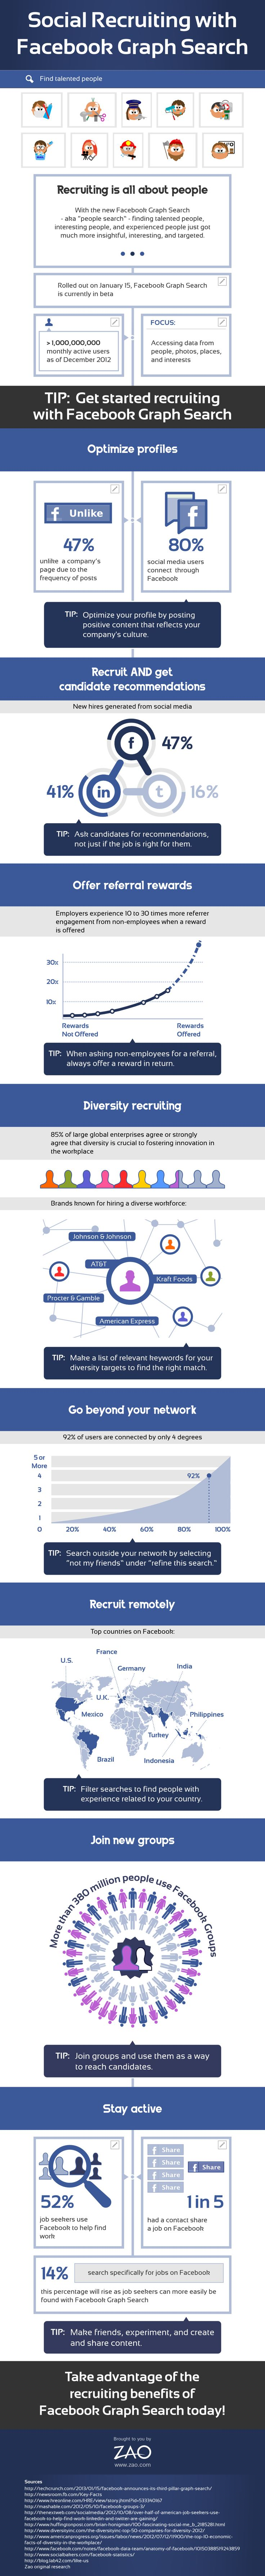 Social Recruiting with Facebook Graph Search. 47 percent of new hires through social media are referred through Facebook, which puts the social network ahead of LinkedIn and Twitter as a recruitment platform. Amazing!